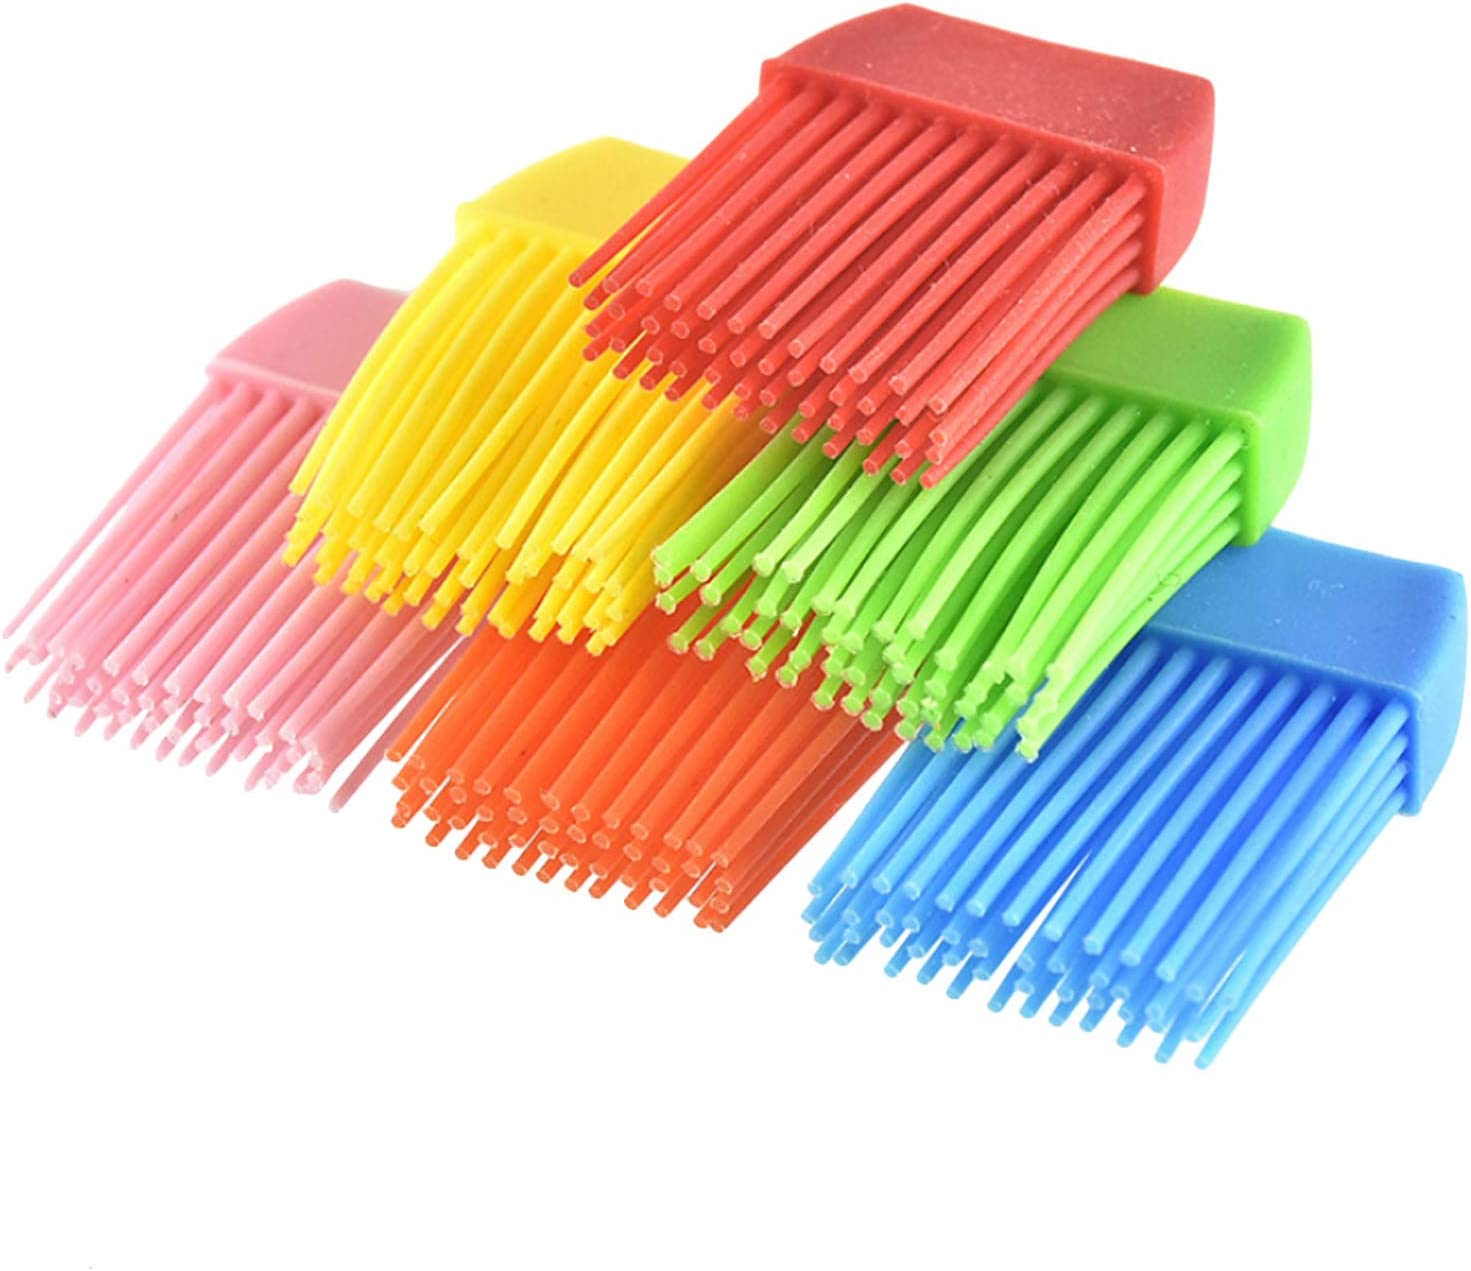 Siebwinn Stainless Steel Grill BBQ Cleaning Brush 3pcs Silicone Brushes for Outdoor BBQ Barbecue Cooking Tools Accessories 18 inch